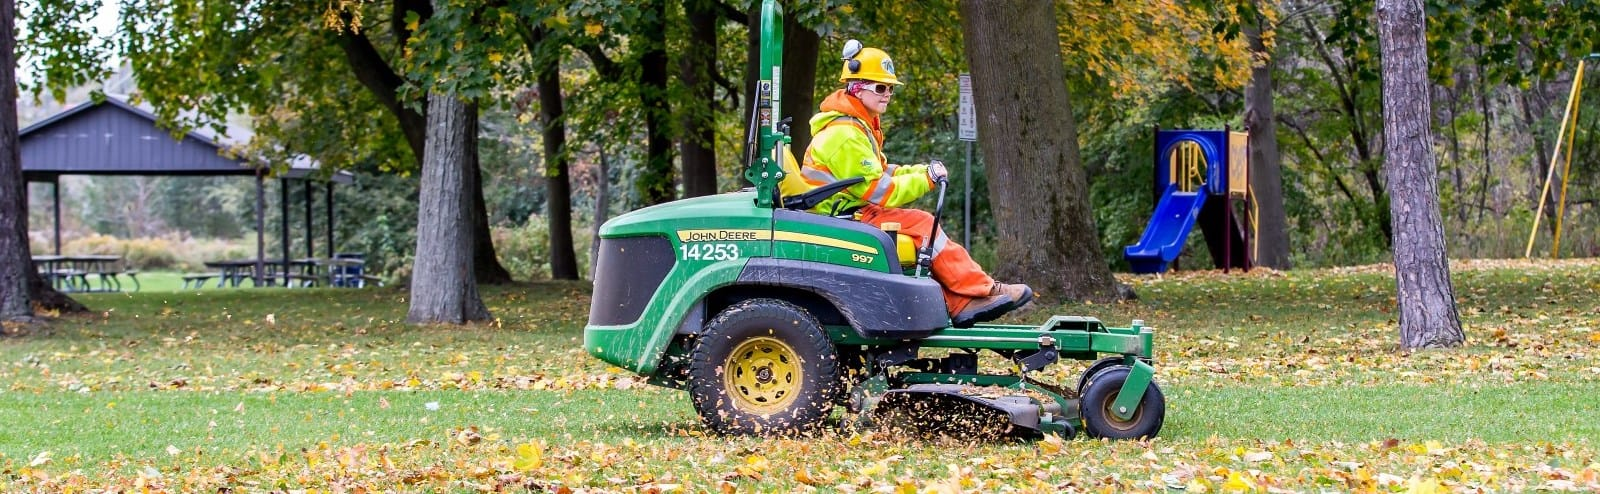 City worker on riding lawnmower.